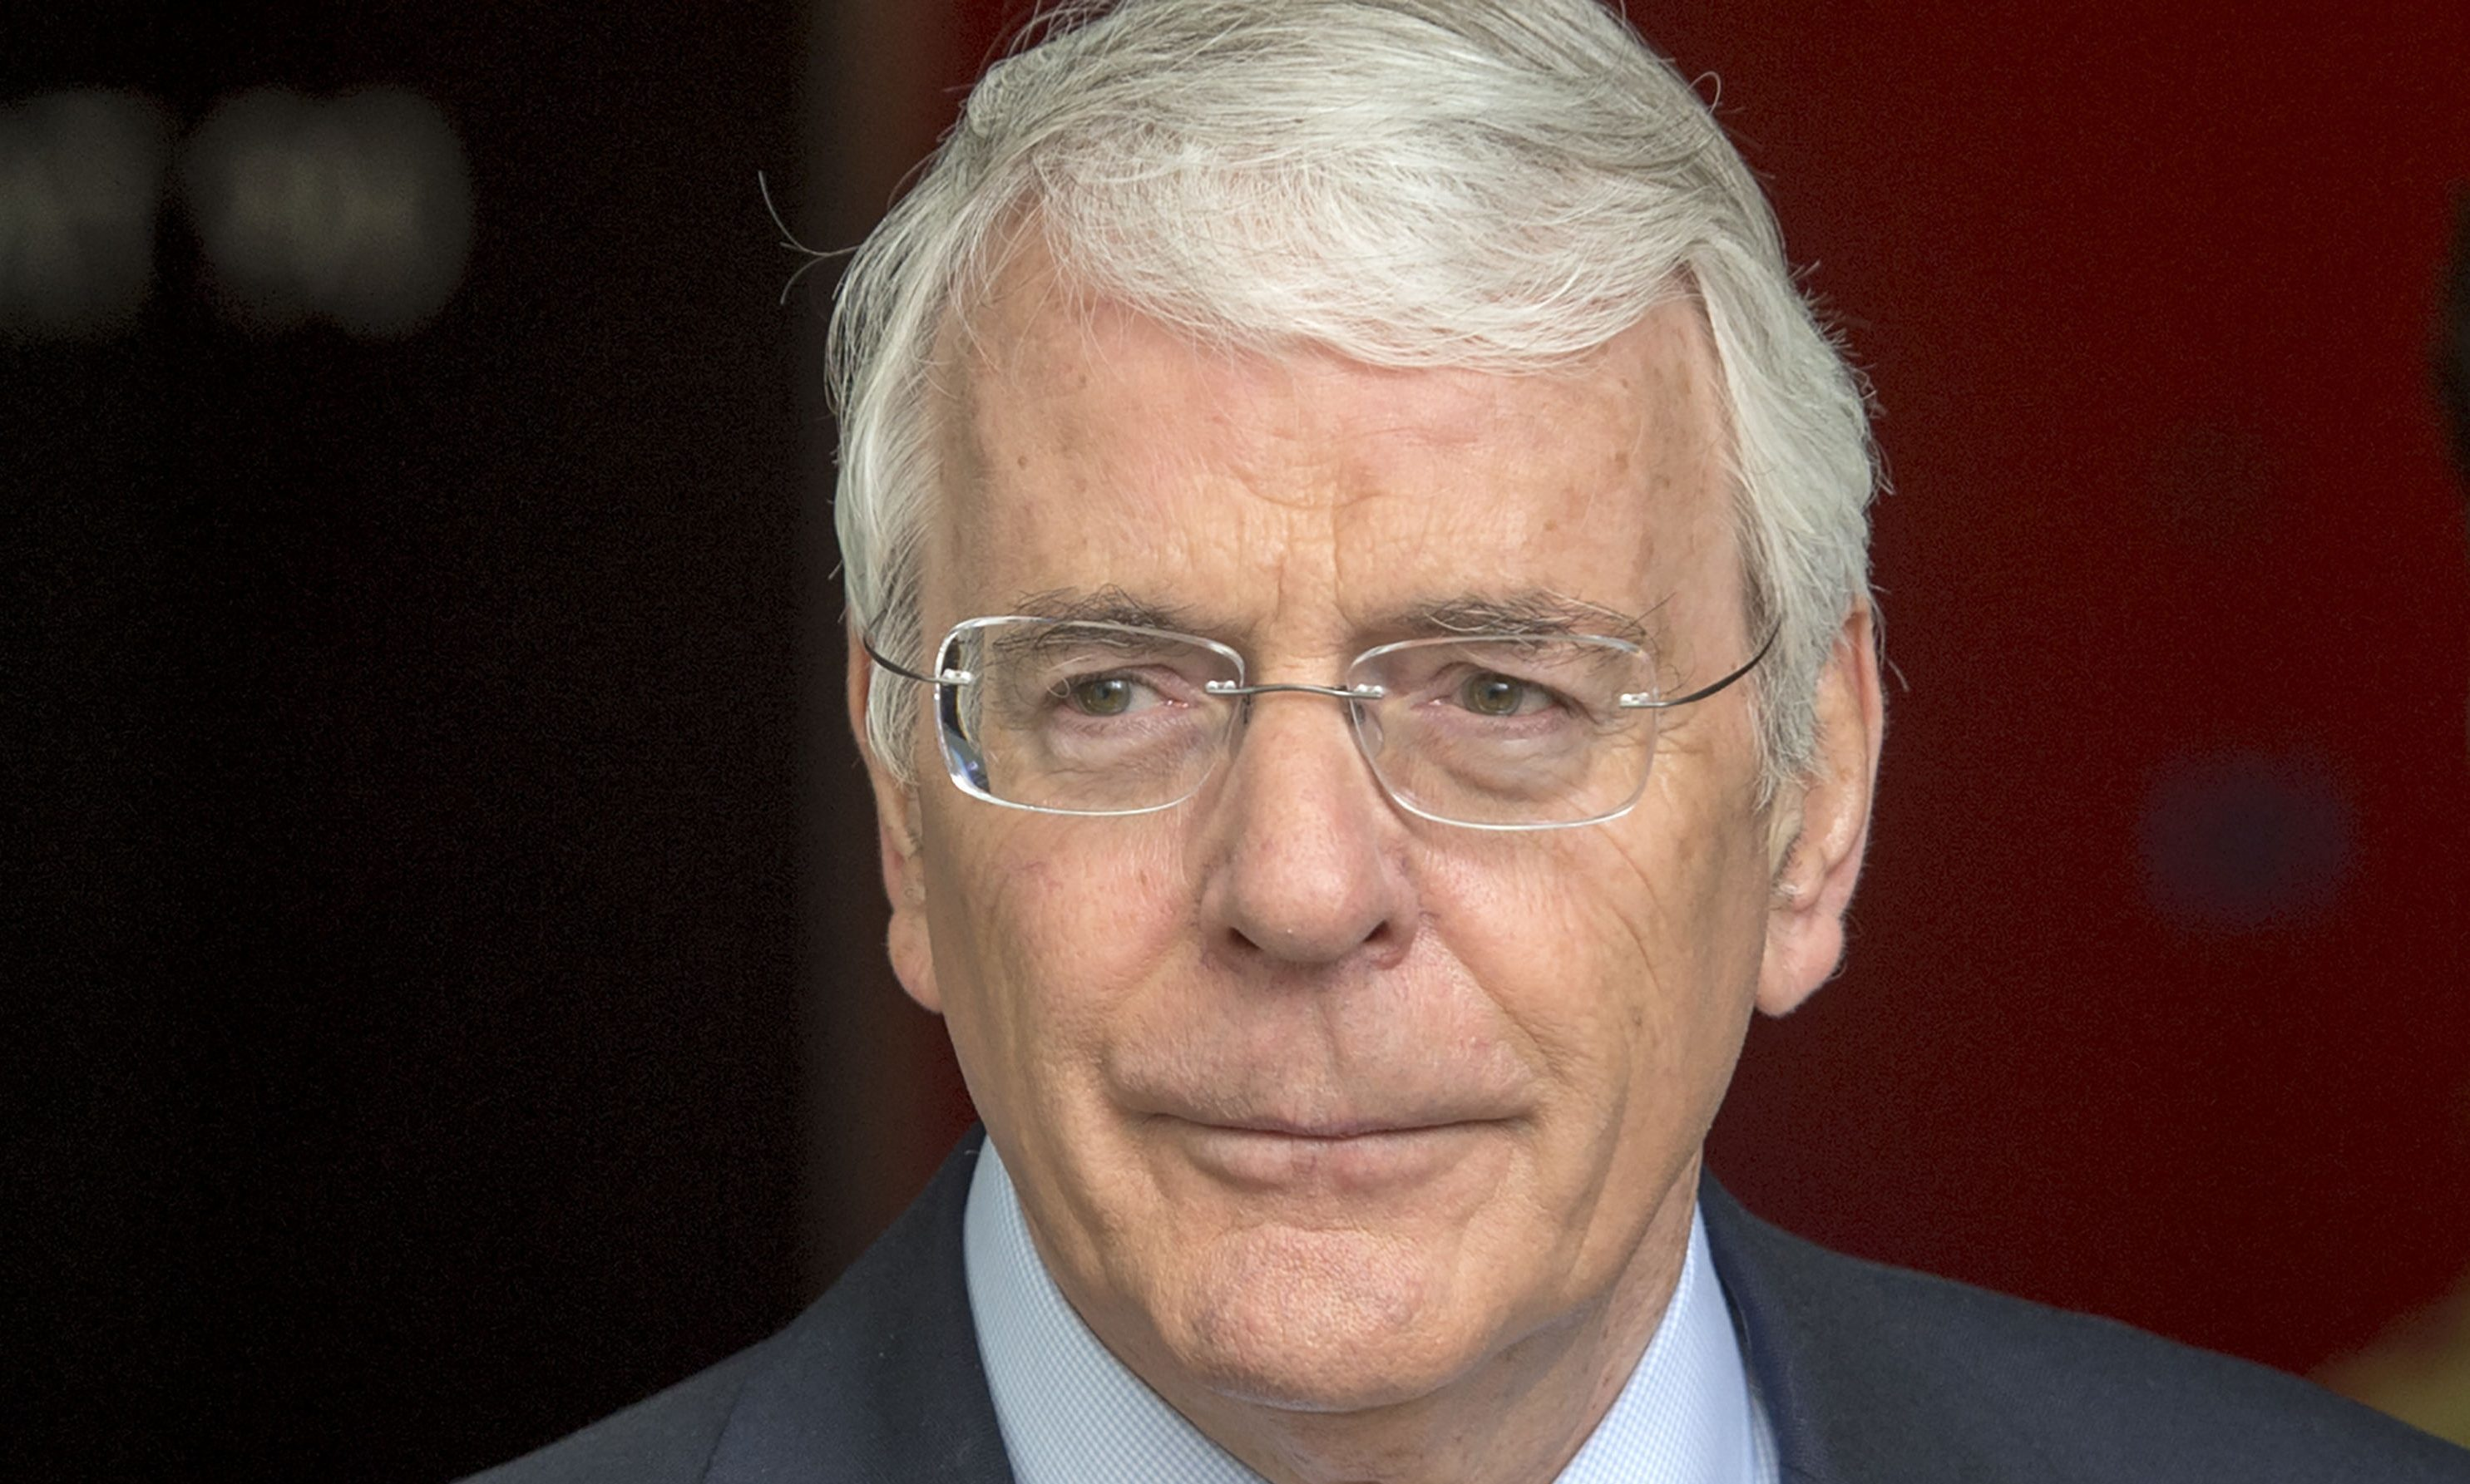 "Sir John Major, who claimed the EU referendum campaign demonstrated a ""squalid civil war"" within the government. His words are similar to a speech written by Peter Pan author JM Barrie, claiming we analyse what is meant by politicians' words rather than what they say."